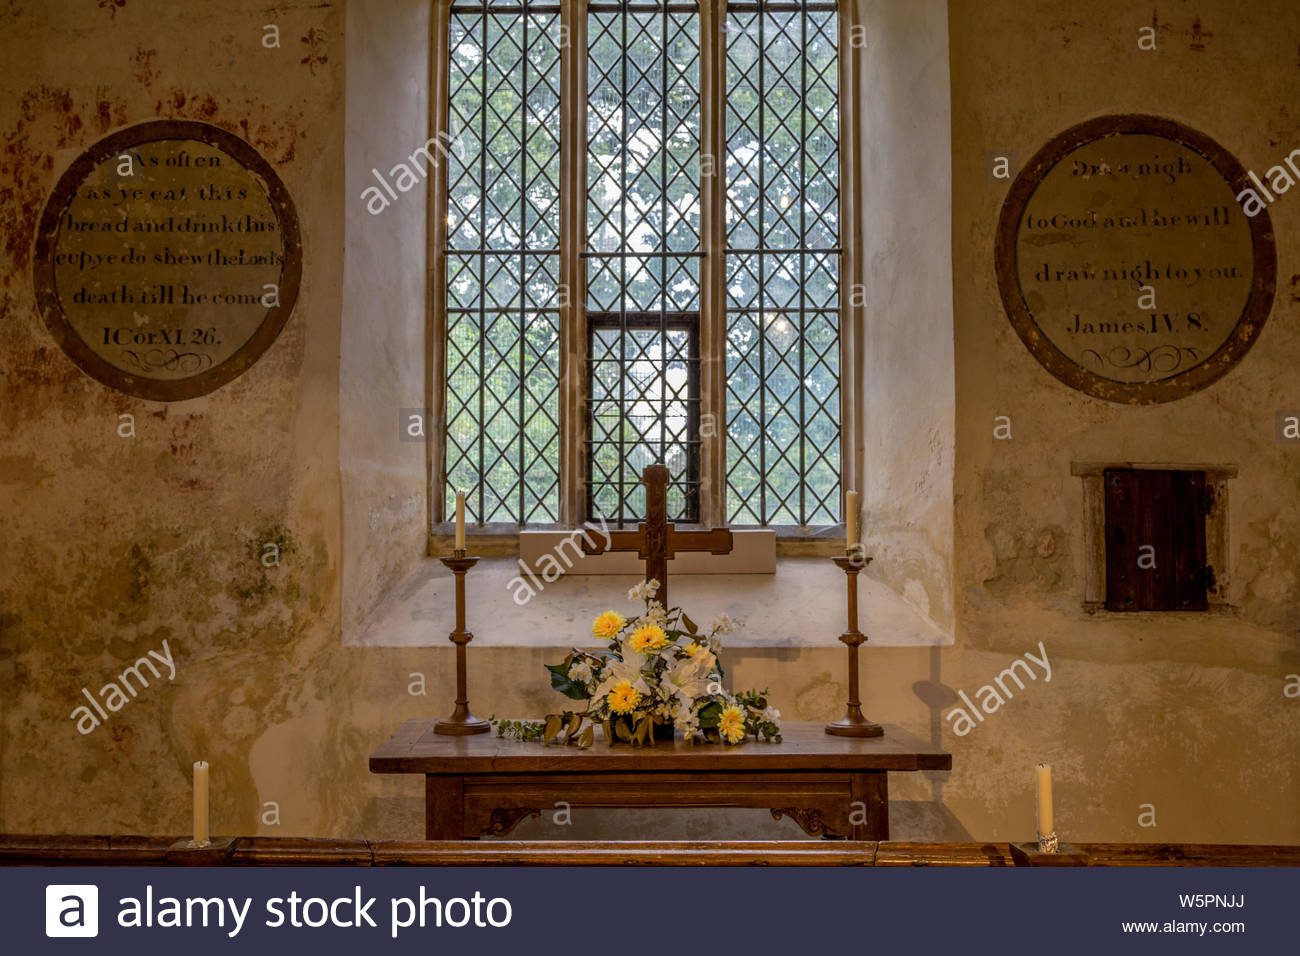 Interior of St. Mary's Church Hartley Wintney, Hampshire UK. Picture shows the eastern window, altar and communion rail and wall painting remnants. Stock Photo